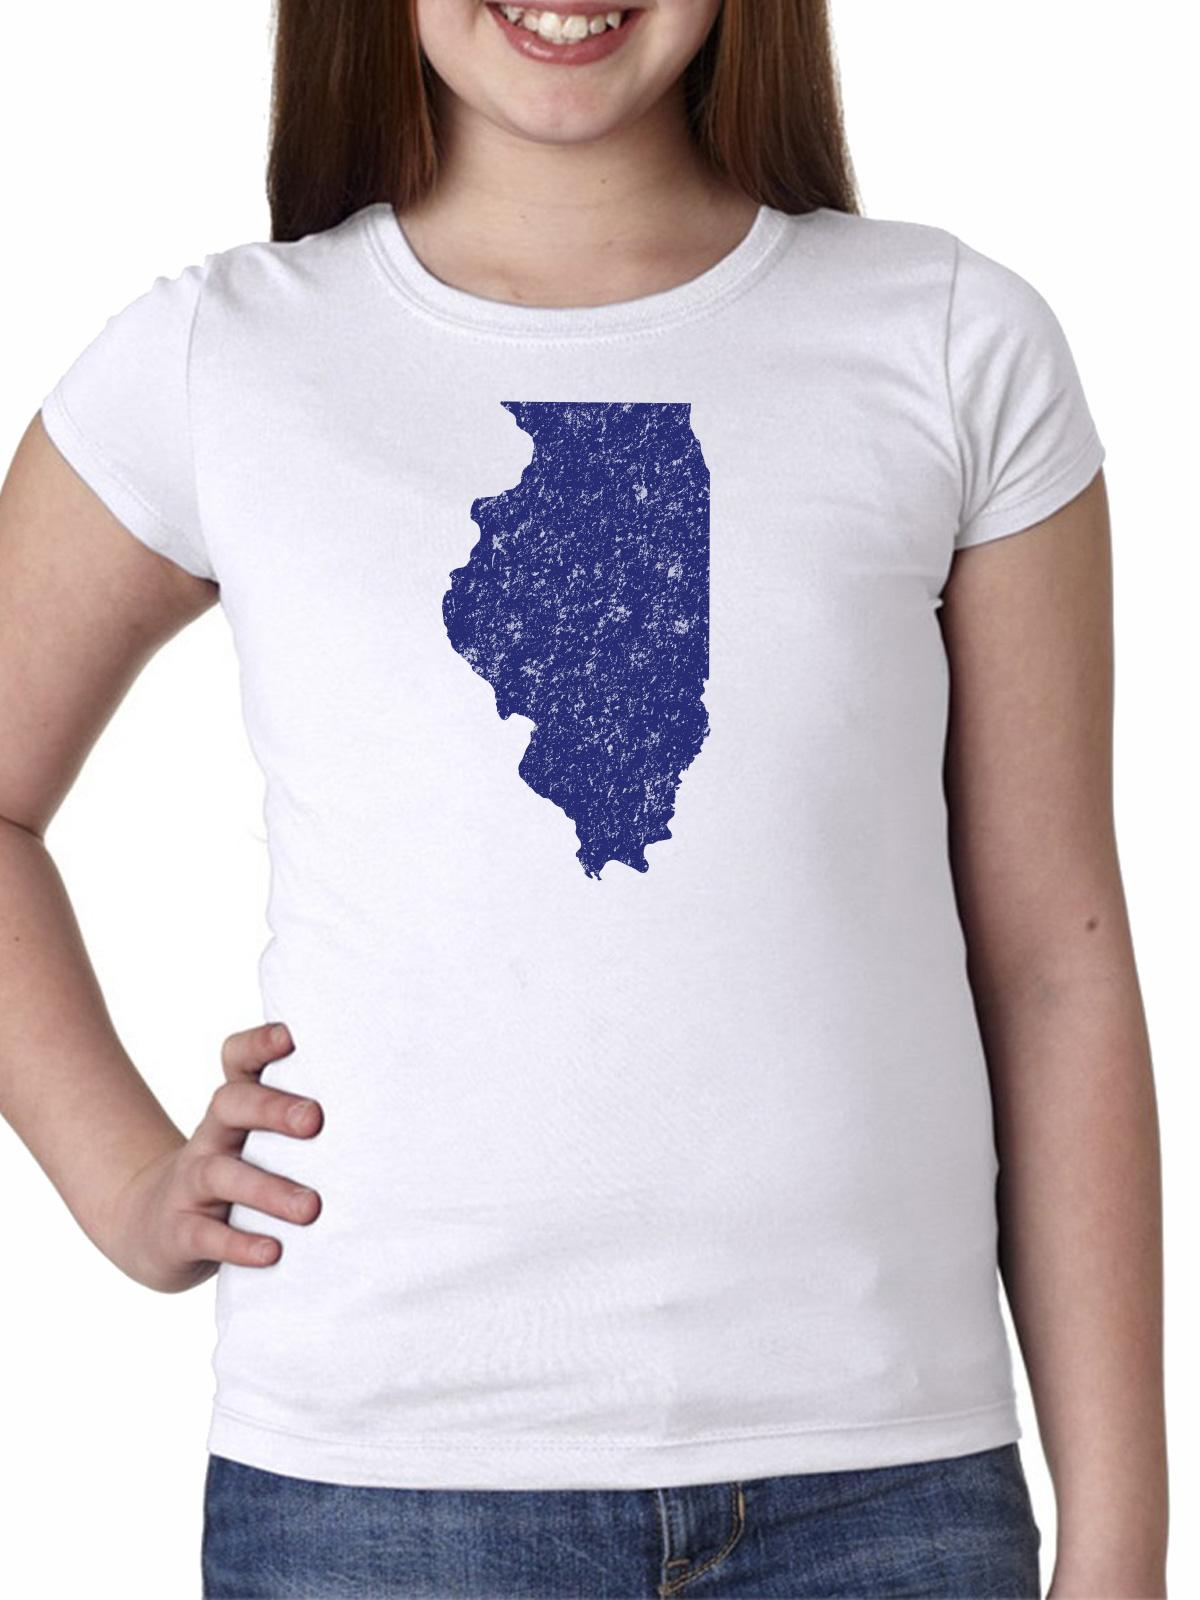 Illinois Blue Democratic - Election Silhouette Girl's Cotton Youth T-Shirt